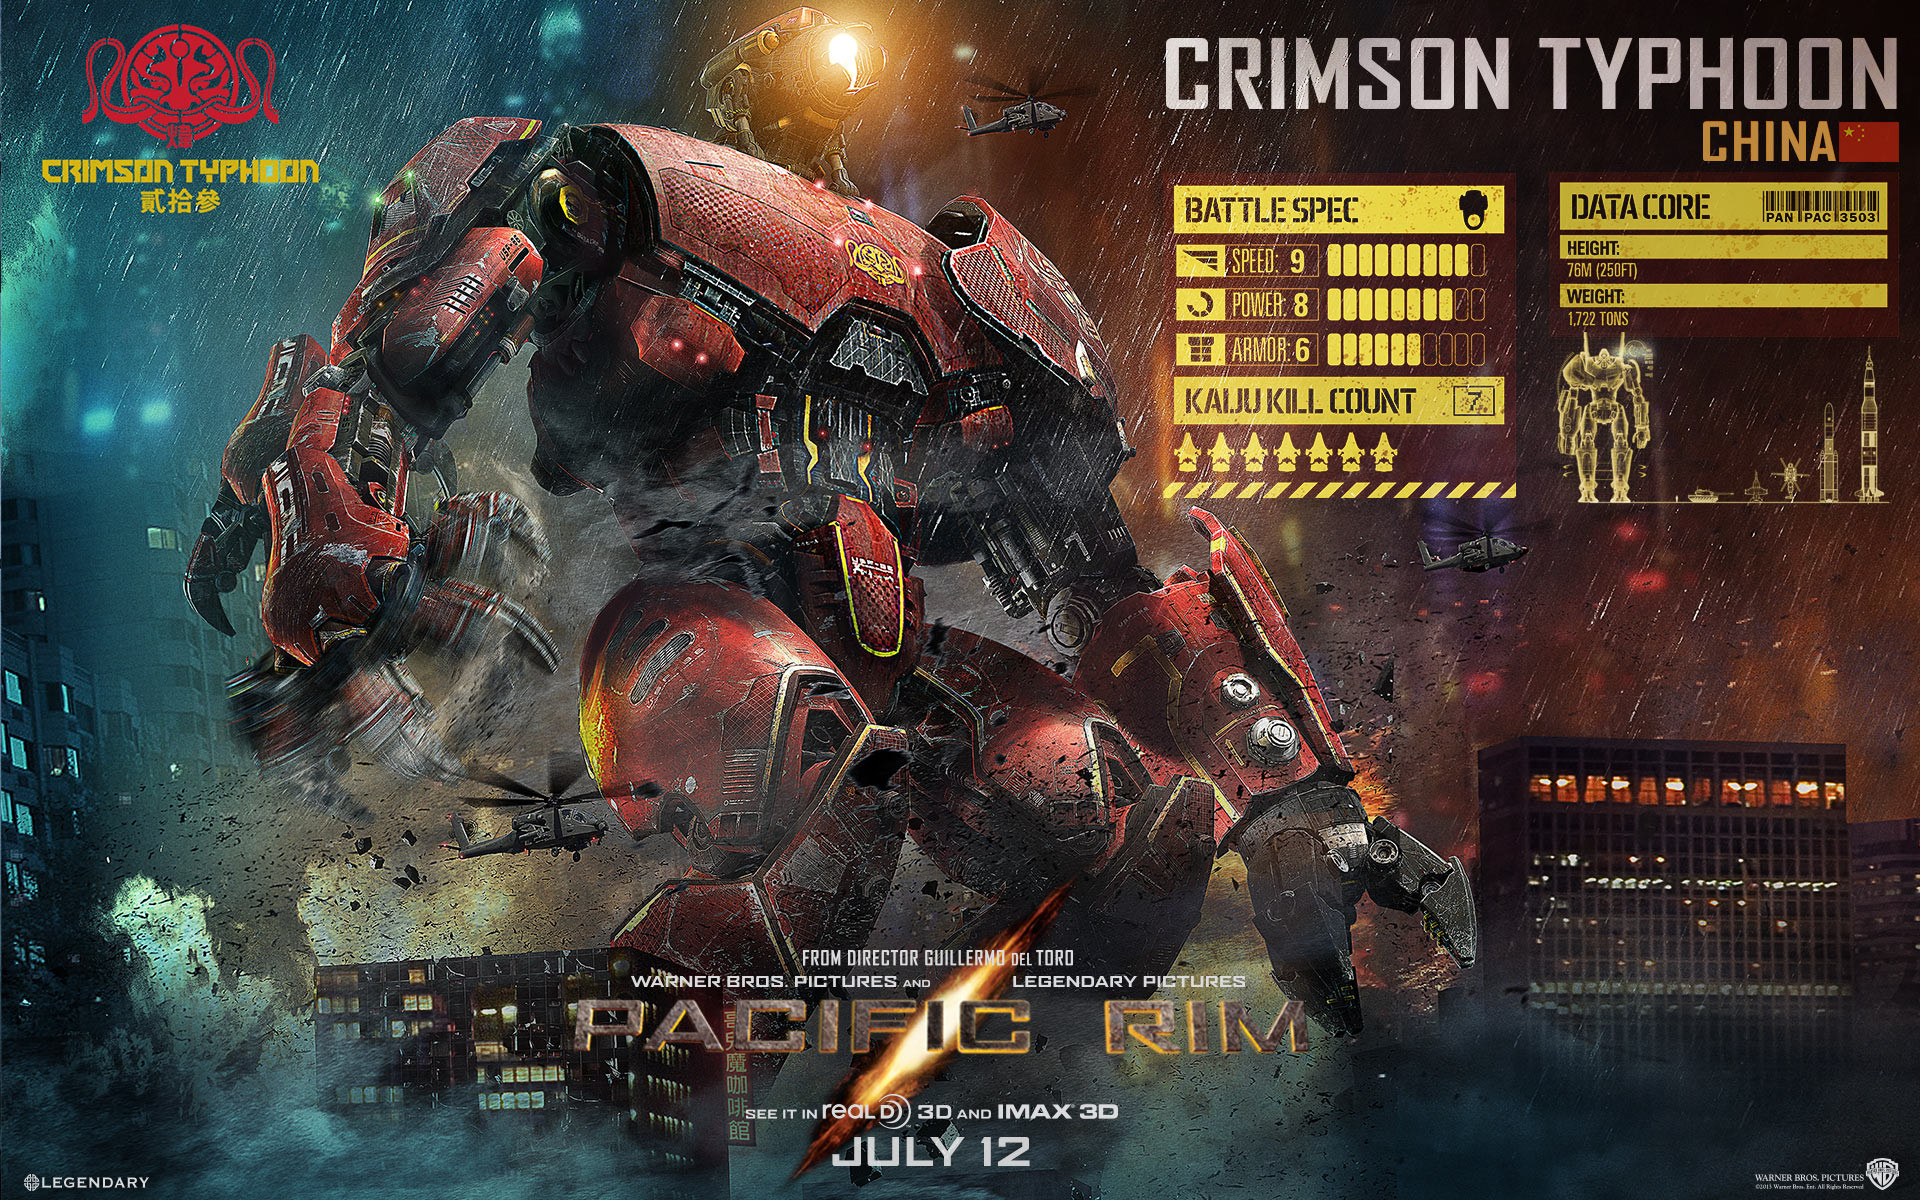 Pacific Rim Images Crimson Typhoon HD Wallpaper And Background Photos